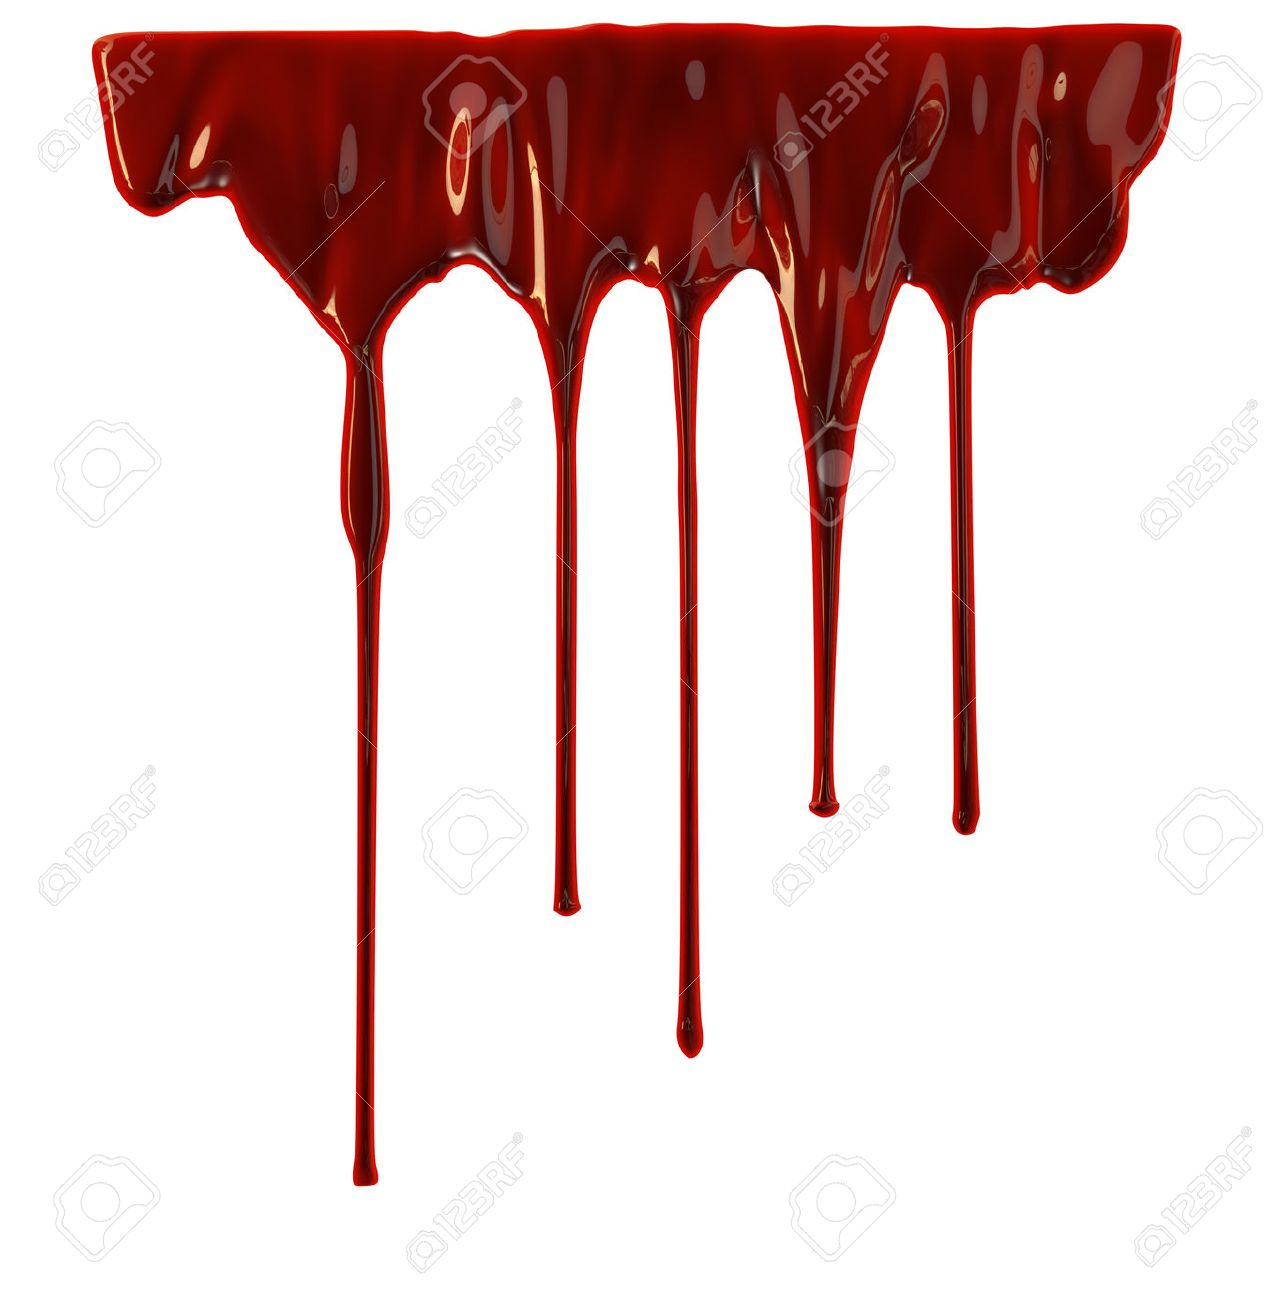 Blood dripping down over white background - 42407740